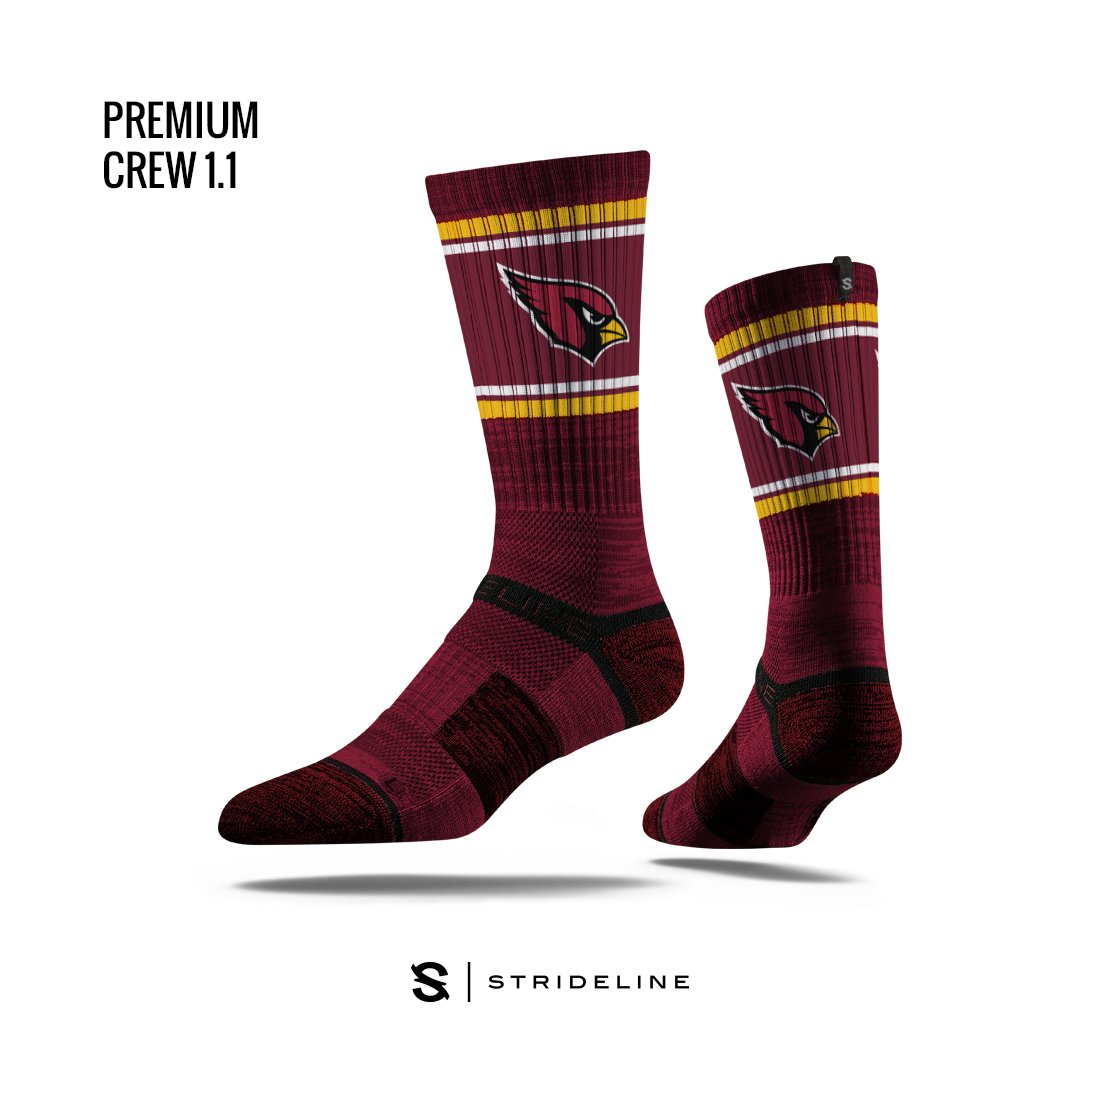 Medical Lake High School Apparel | Socks | Premium